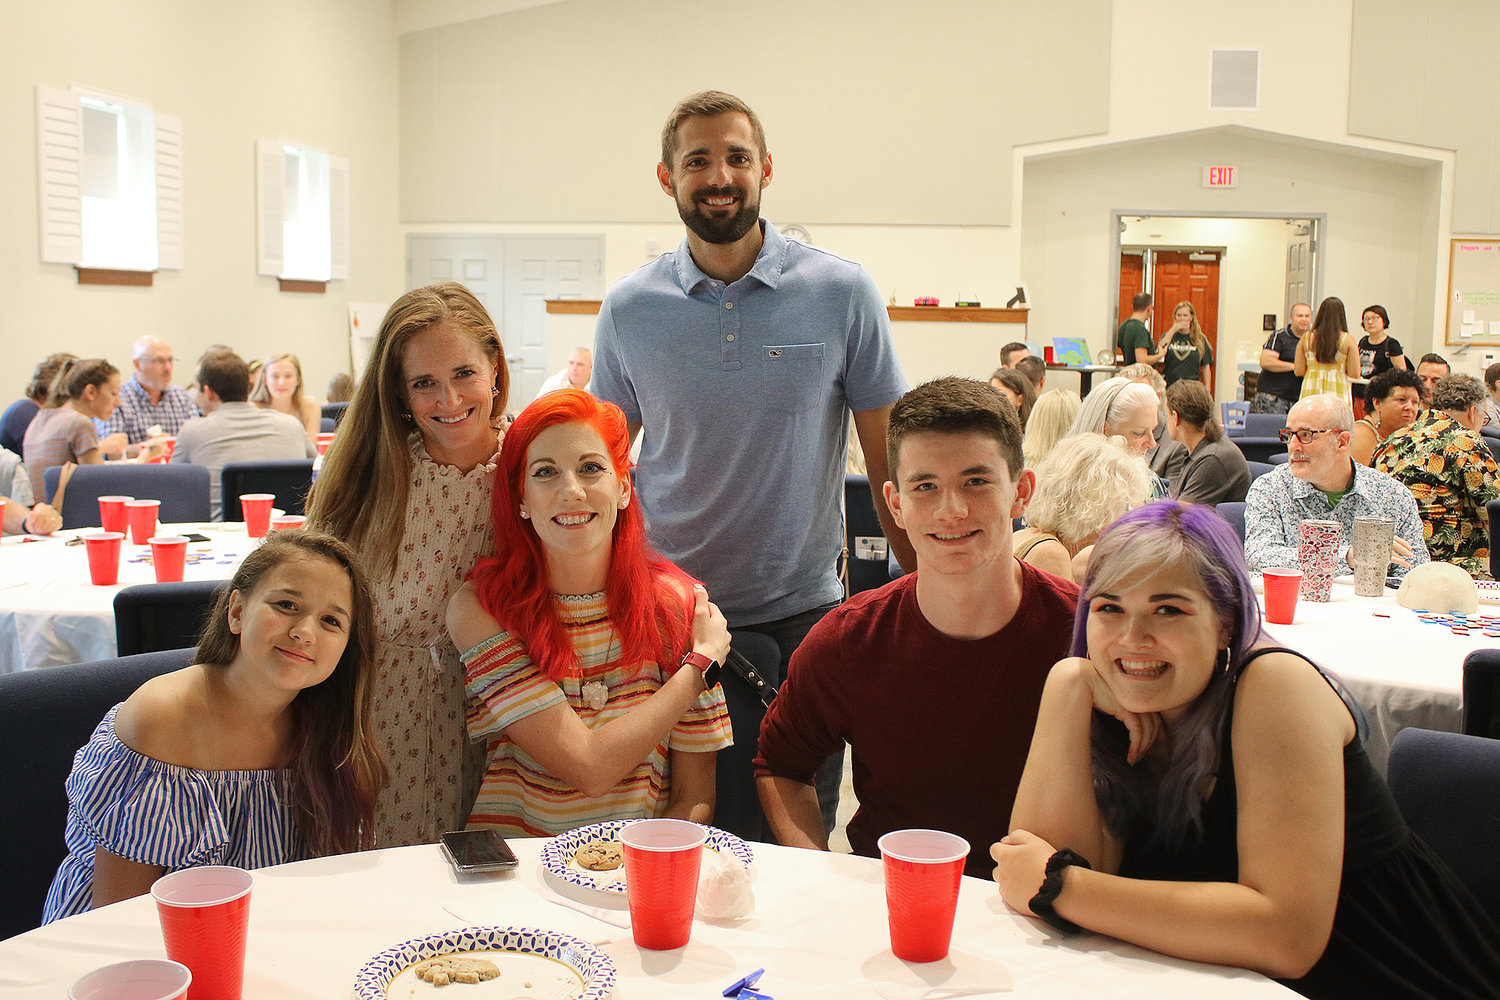 From left, Reagan Bushman, Meg James, Kacey Bushman, Logan James, KJ Bushman and Riley Bushman attended the Night of Celebration Aug. 9 to support The Greatest Exchange.